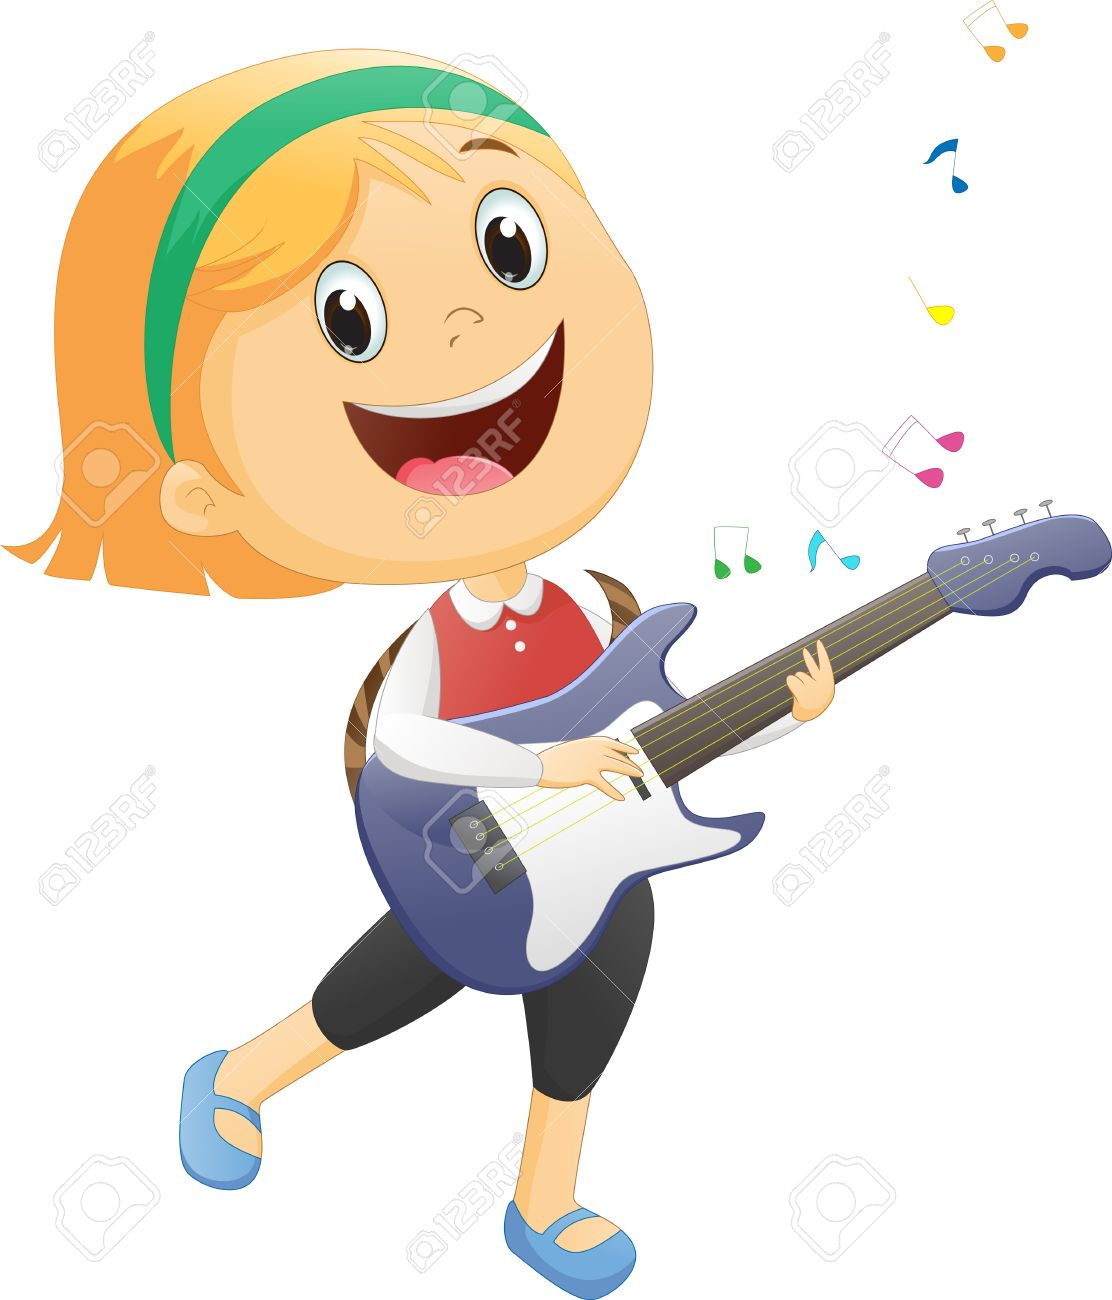 Guitar playing clipart banner freeuse stock Girl playing guitar clipart 8 » Clipart Station banner freeuse stock